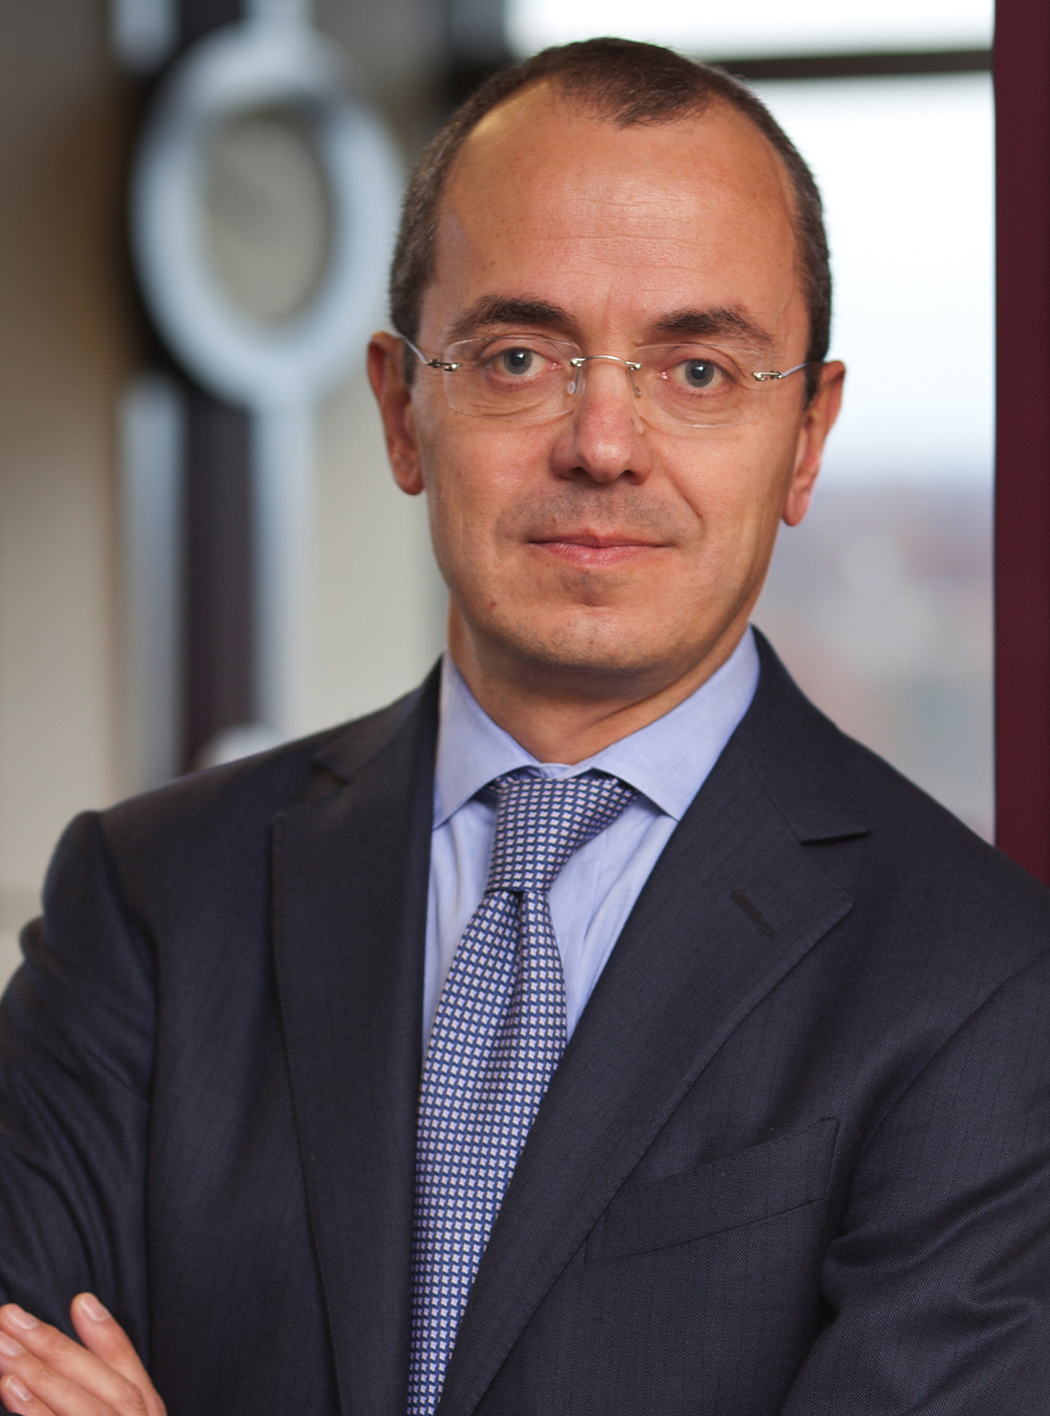 Bristol-Myers Squibb Appoints Giovanni Caforio, M.D., Chief Executive Officer, Effective May 5; Lamberto Andreotti to Become Chairman